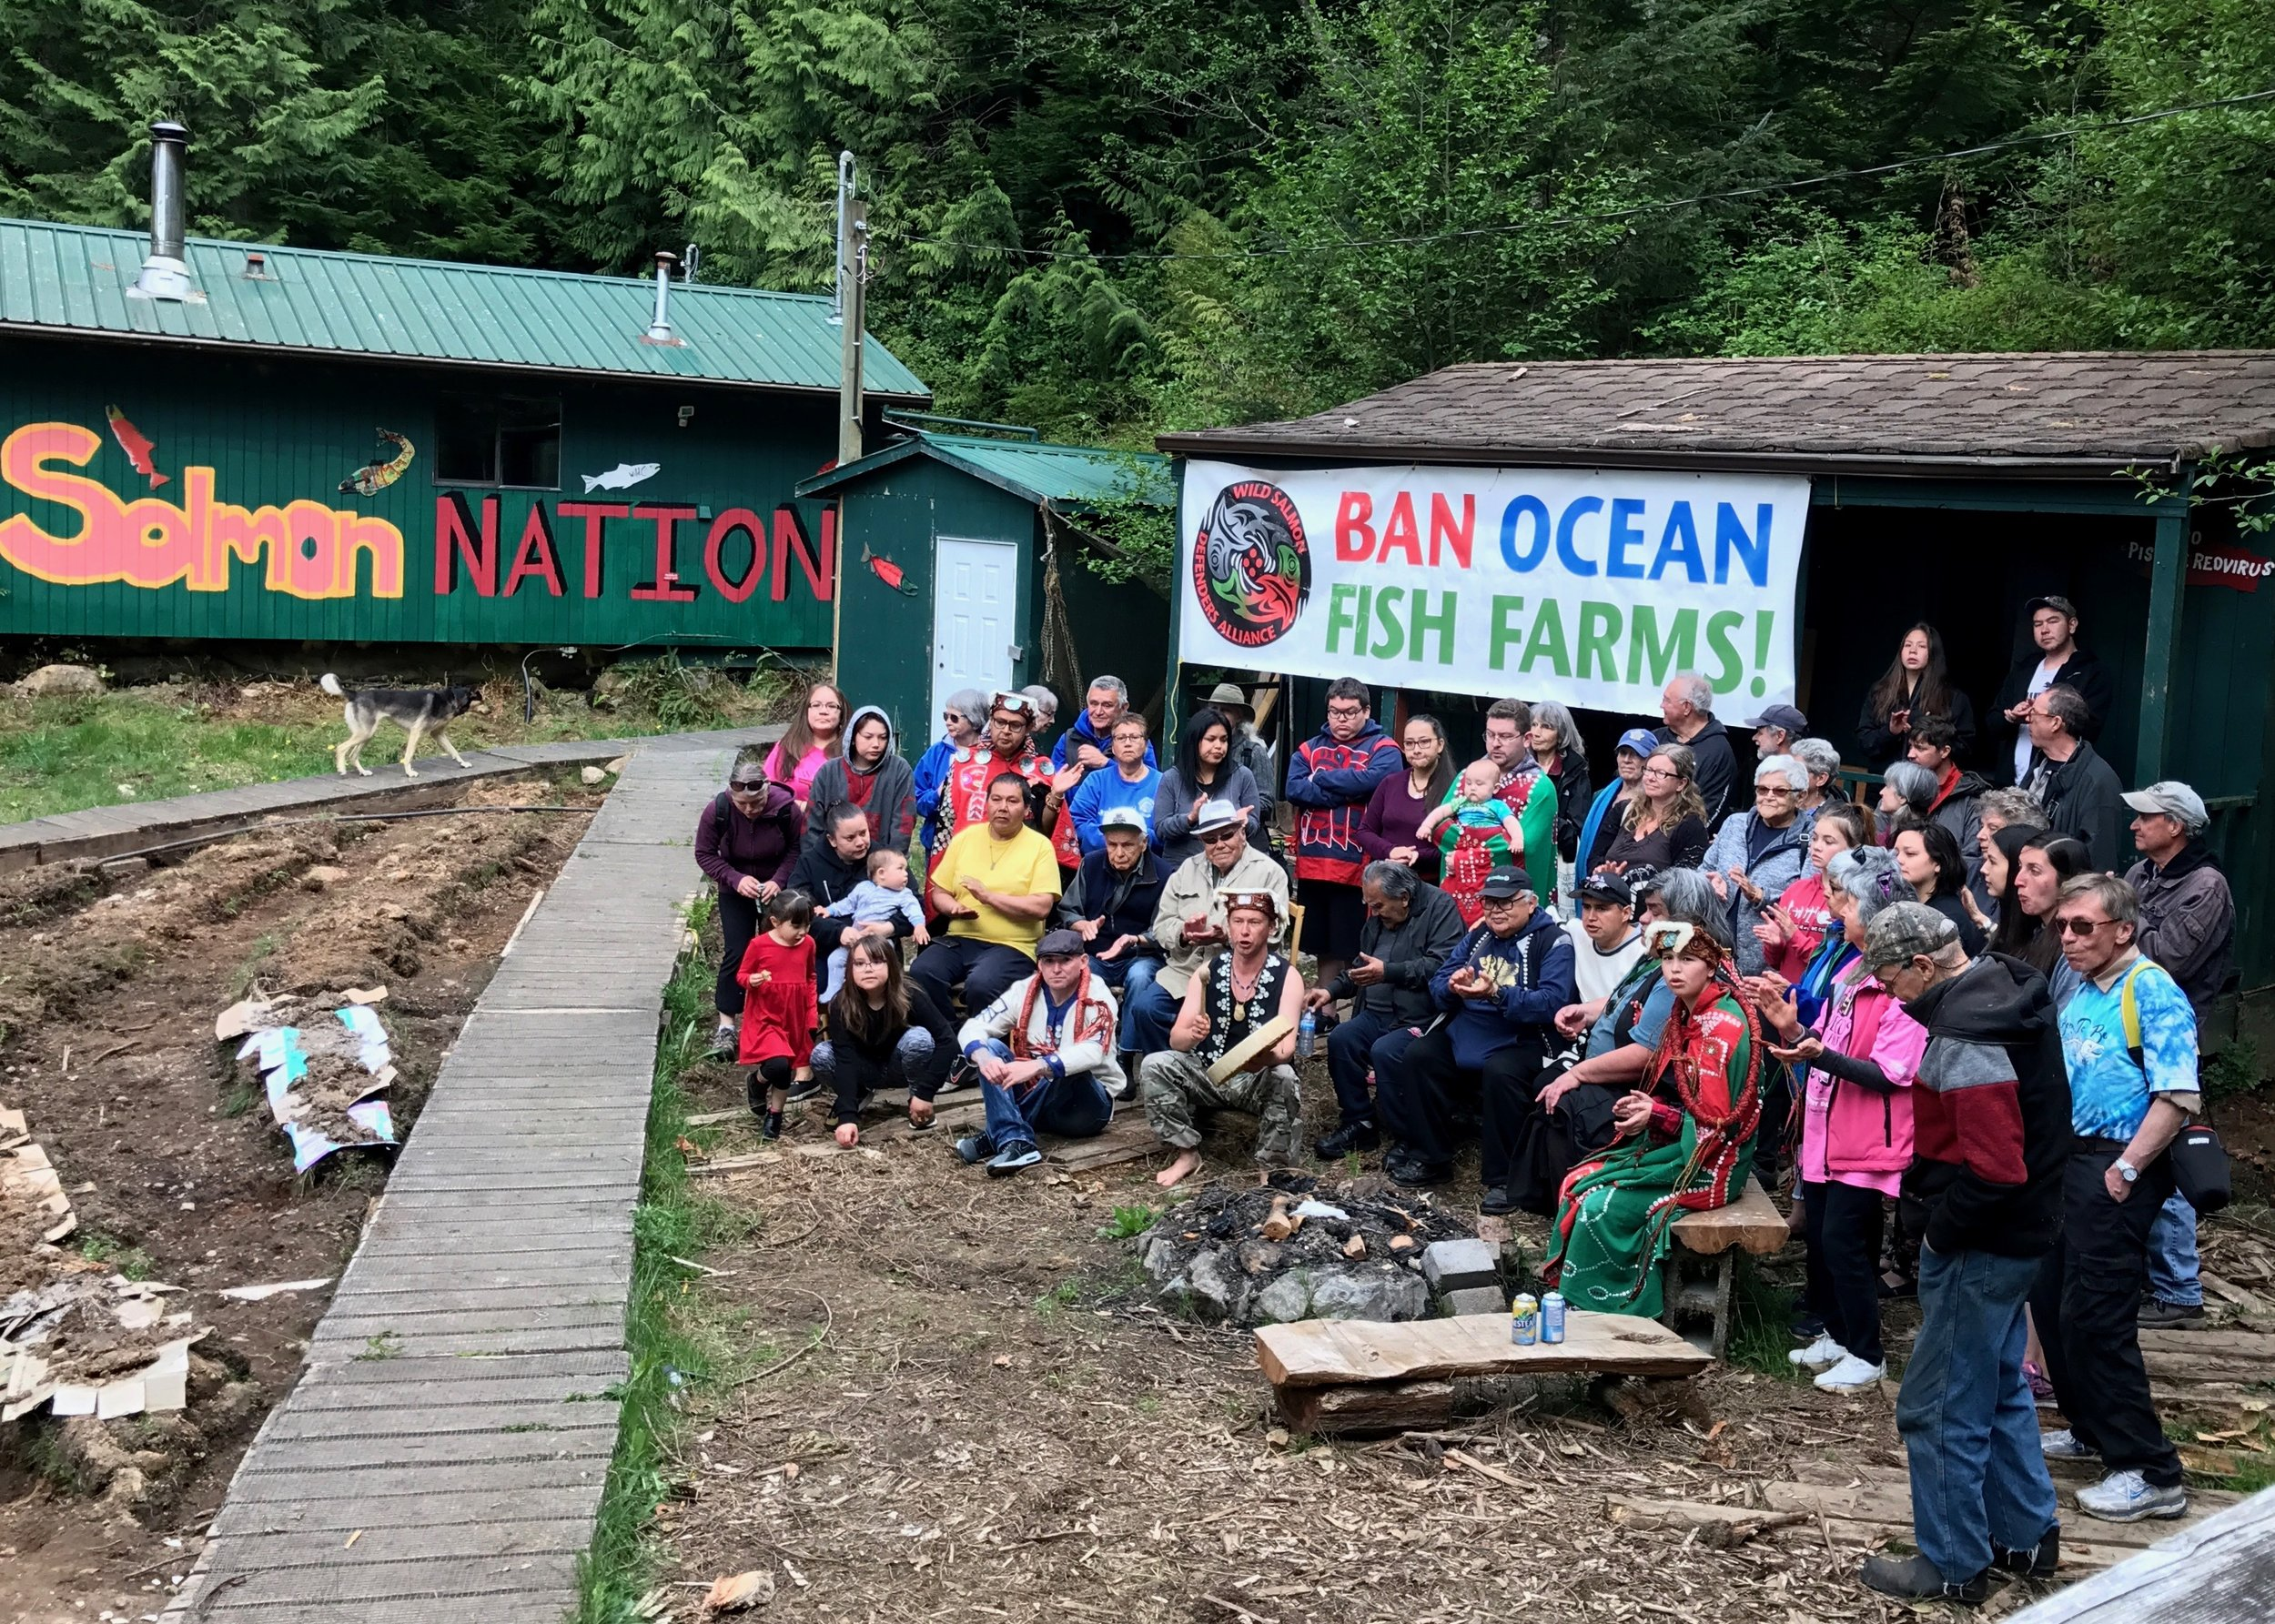 'Namgis First Nation Protest of Swanson Island Fish Farm – May 6, 2018. Photo, Michael Reppy